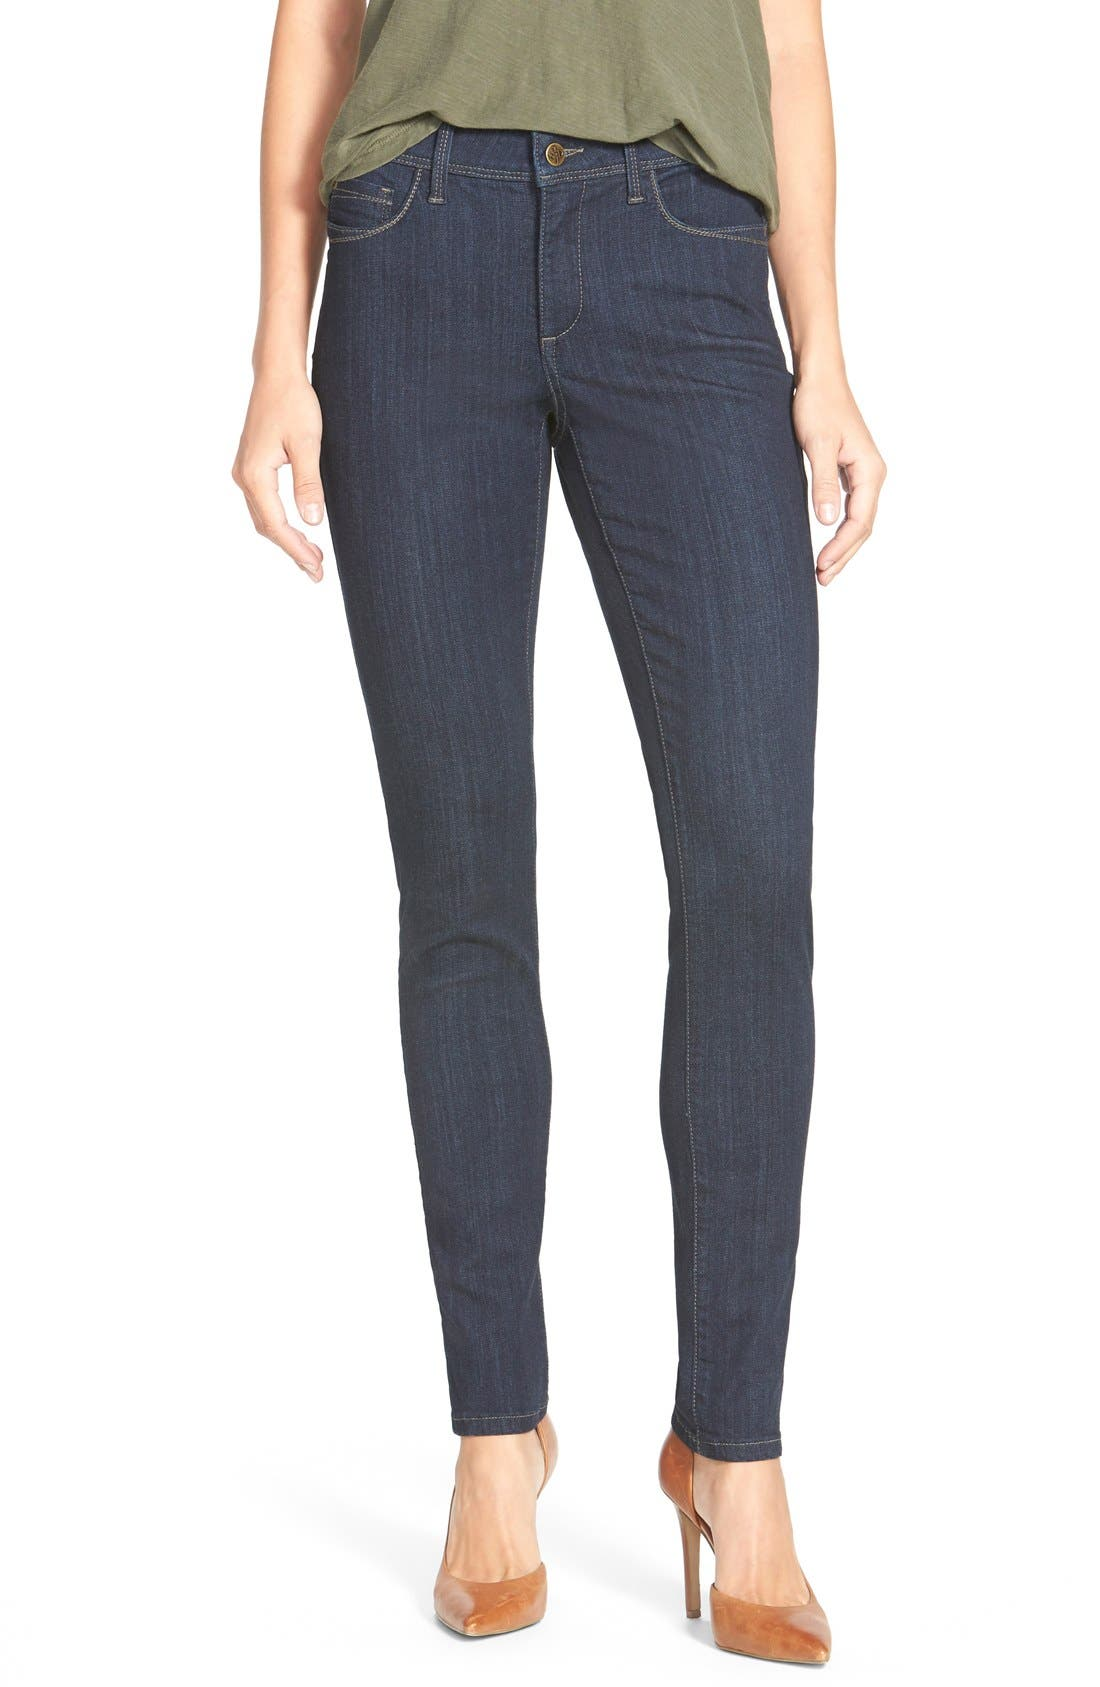 Main Image - NYDJ 'Ami' Stretch Skinny Jeans (Regular & Petite)